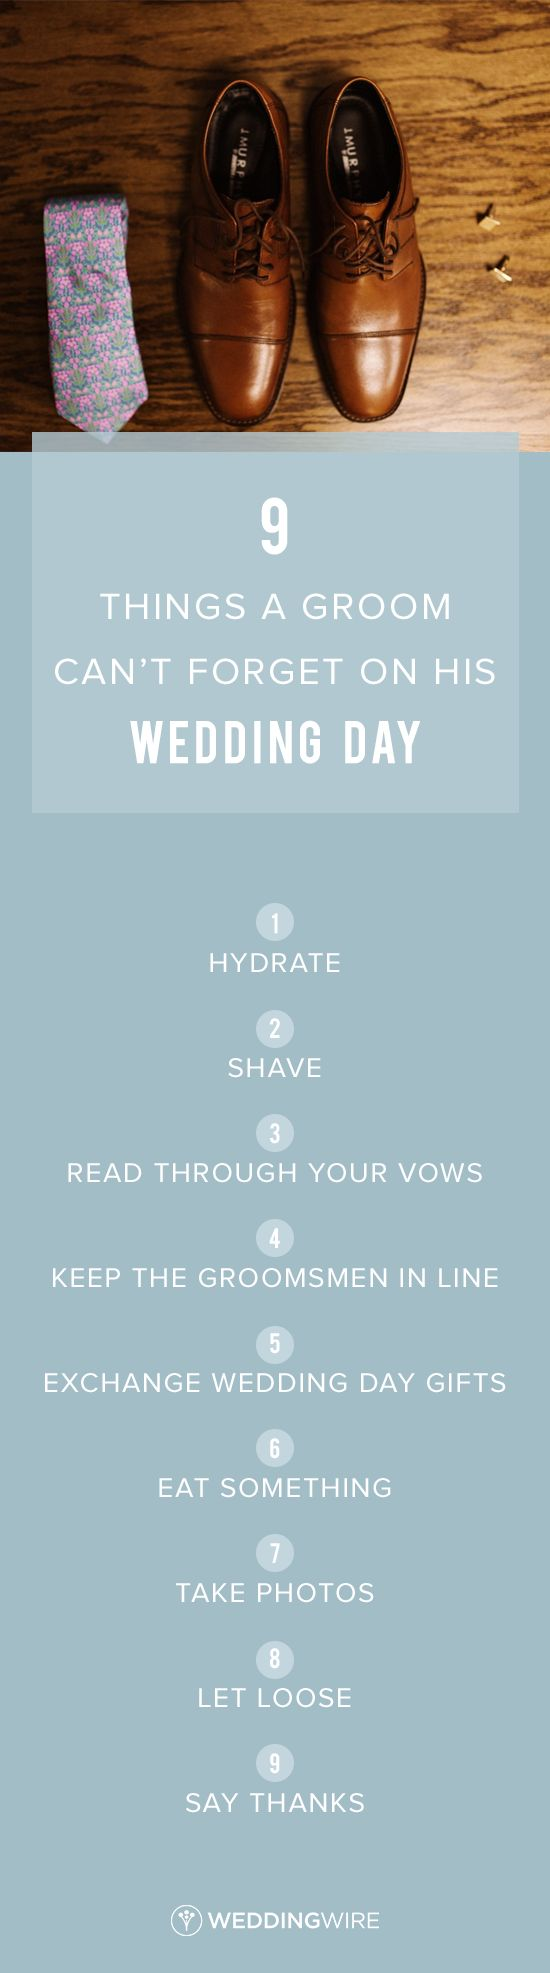 9 Things a Groom Can't Forget on His Wedding Day - Grooms, you'll have a lot to worry about on your wedding day. See the 9 things you shouldn't forget to do on @weddingwire! {Heather Jowett}